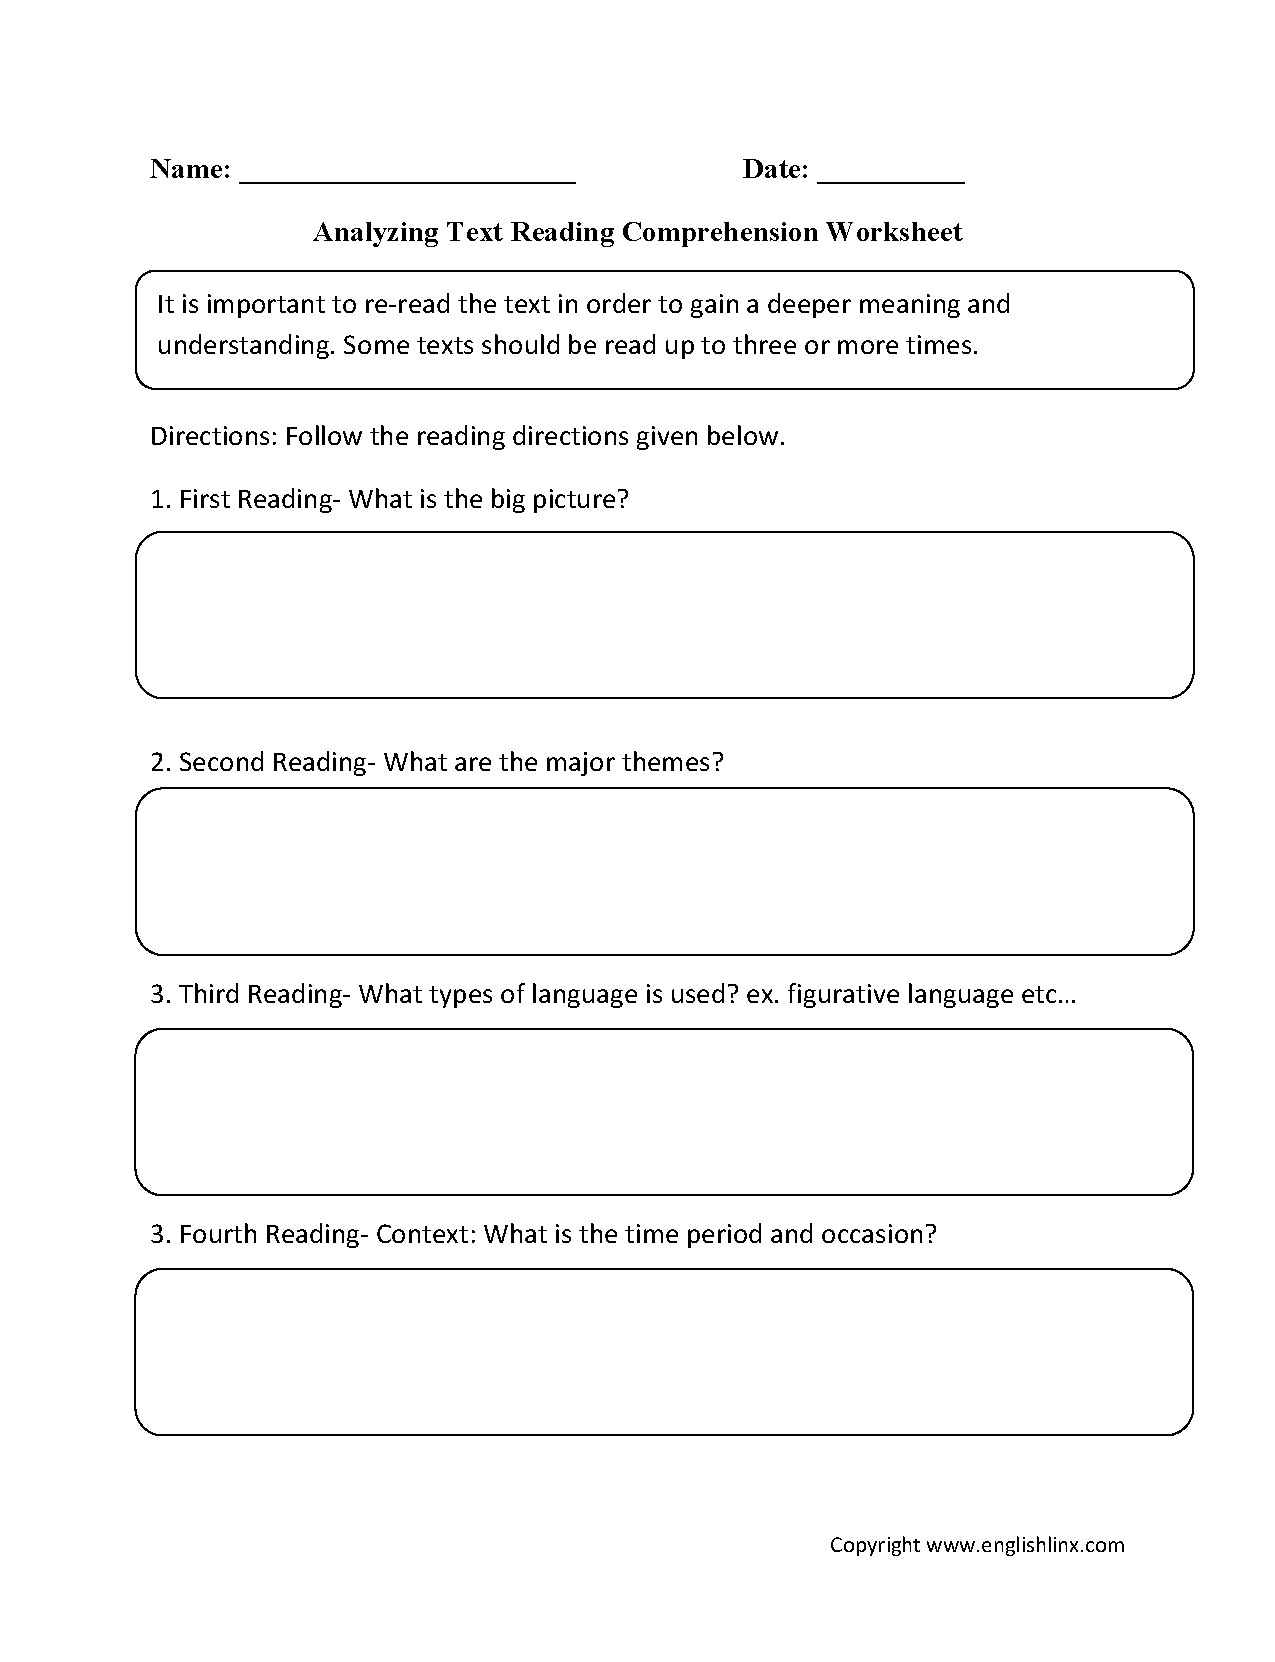 Englishlinx.com | Reading Comprehension Worksheets